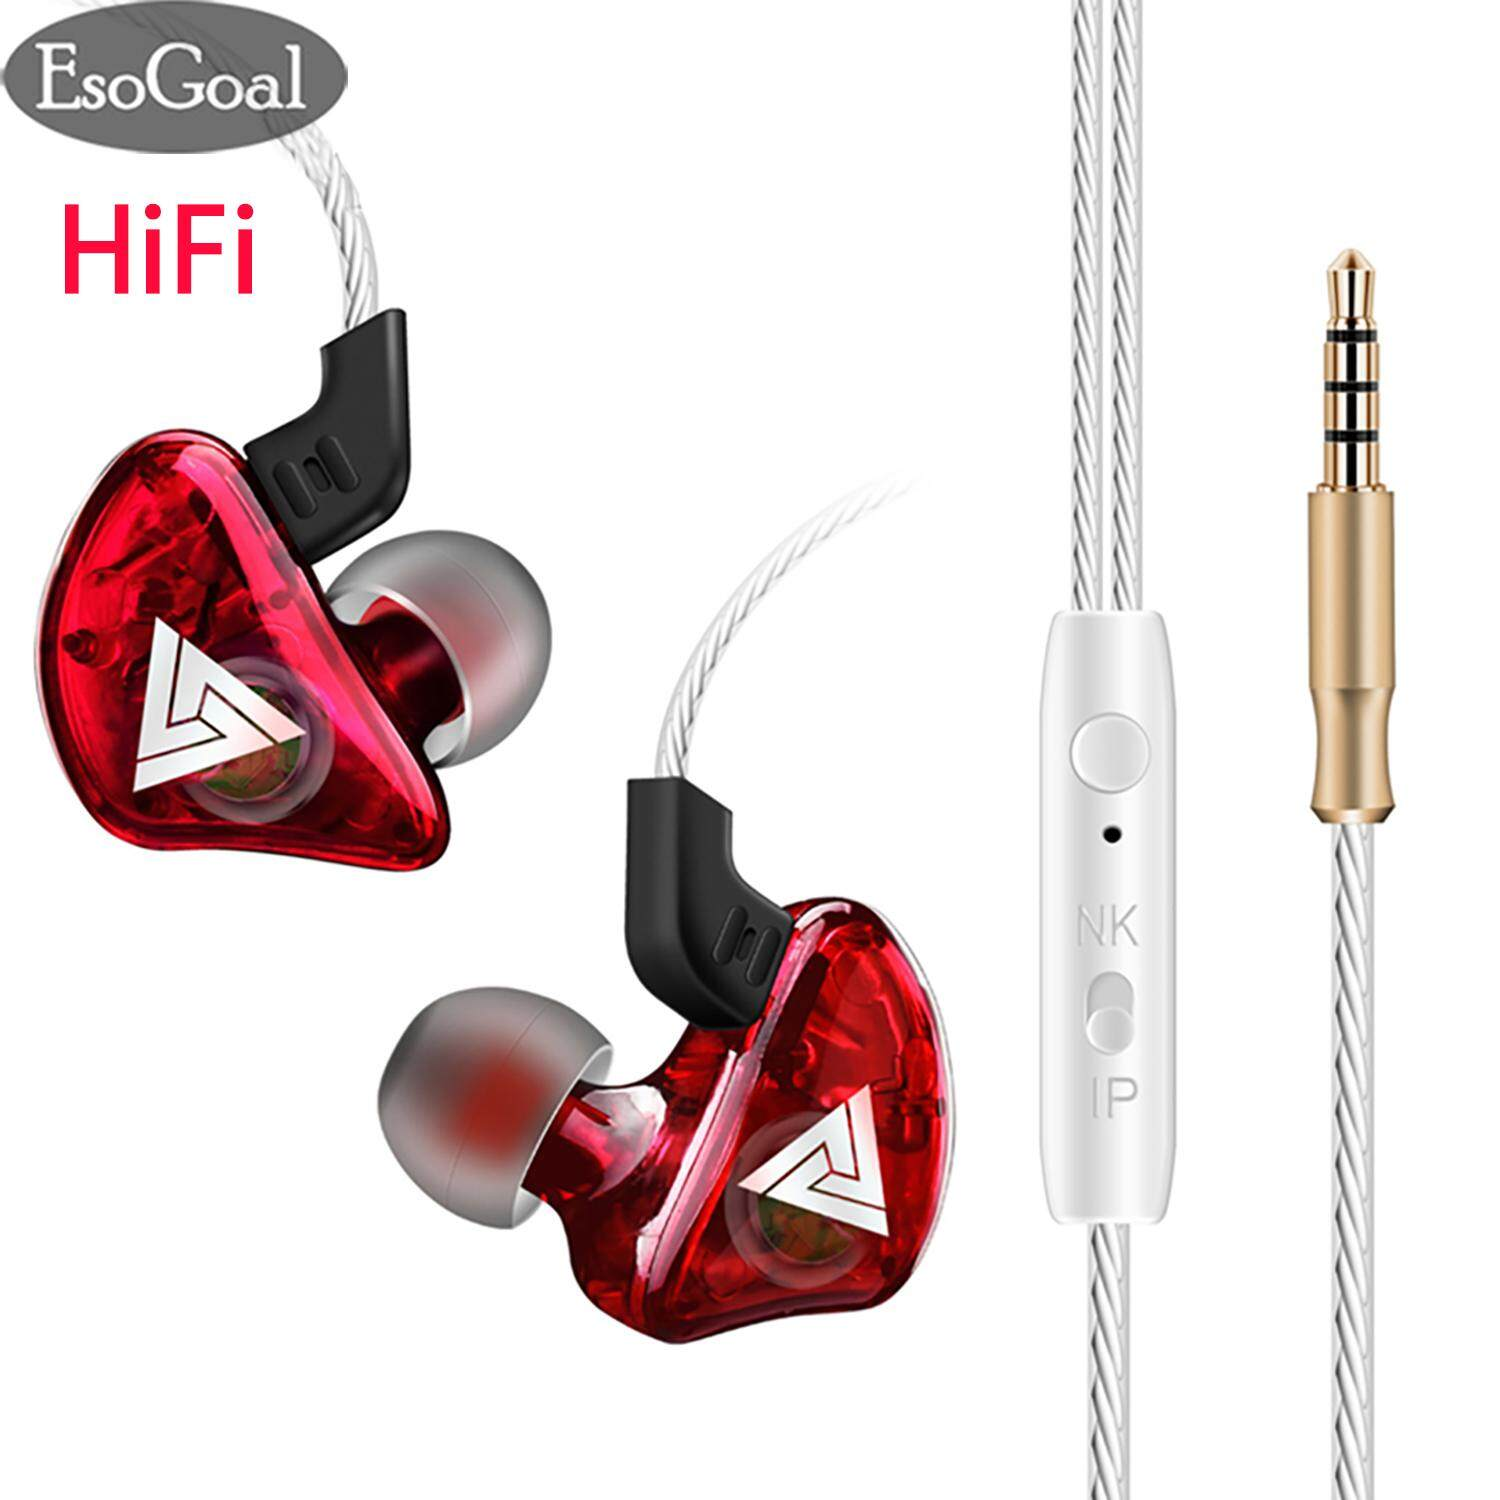 EsoGoal In-ear Headphones In Ear Headphones HiFi Earphones Wired Earbuds Stereo Earphones Bass Noise Cancelling Headset with Mic